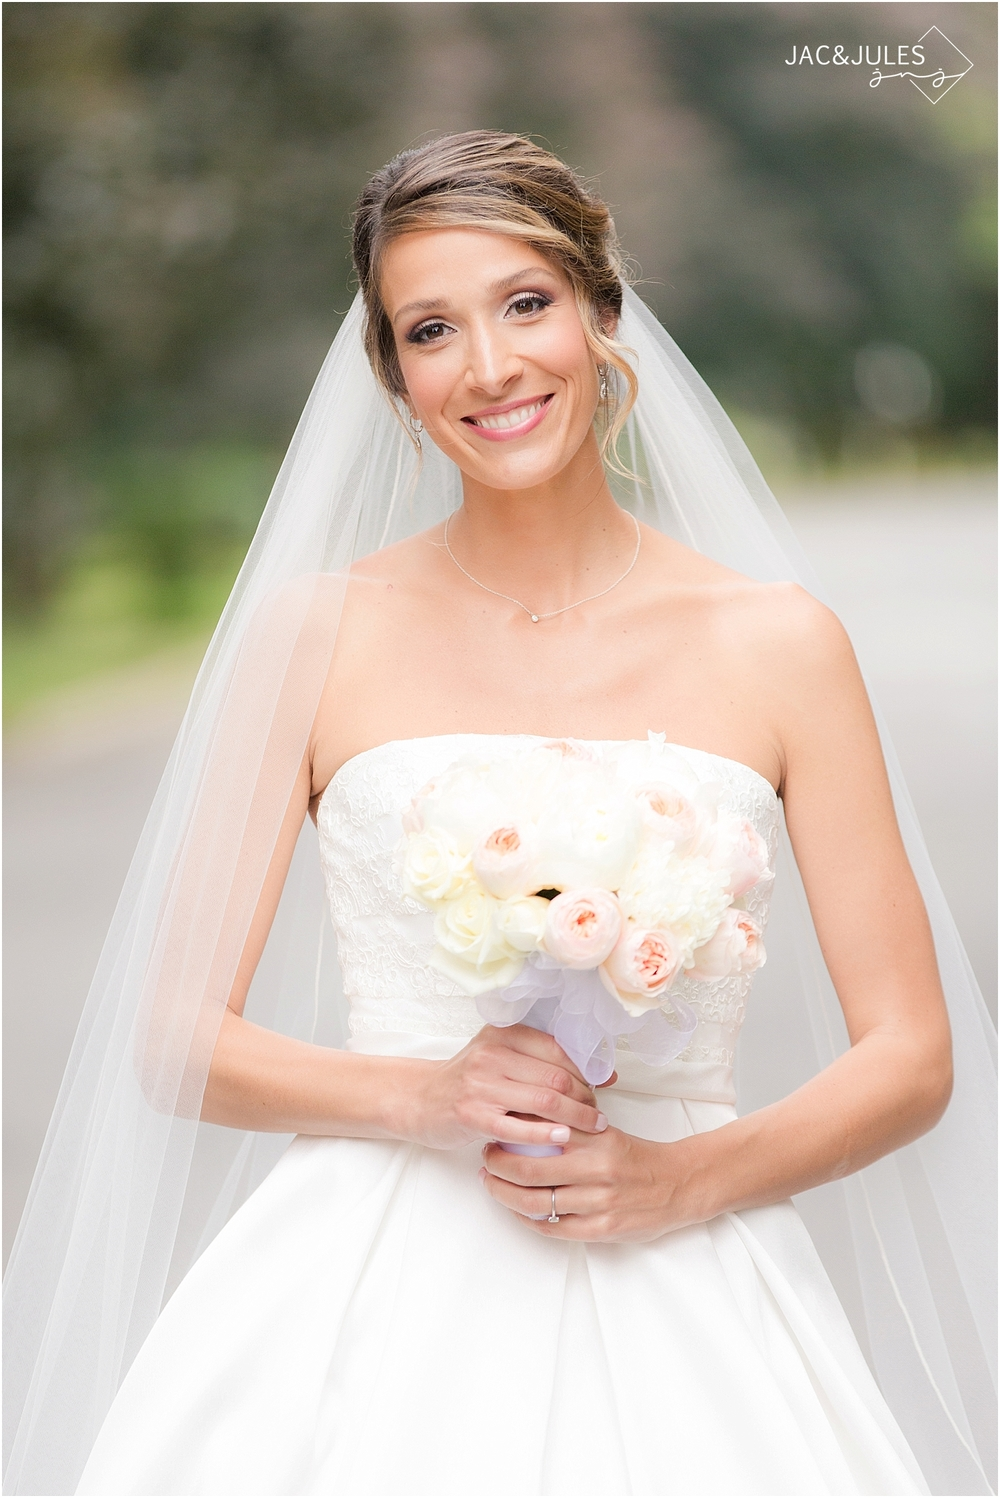 jacnjules photographs beautiful bride at olde mill inn in basking ridge nj